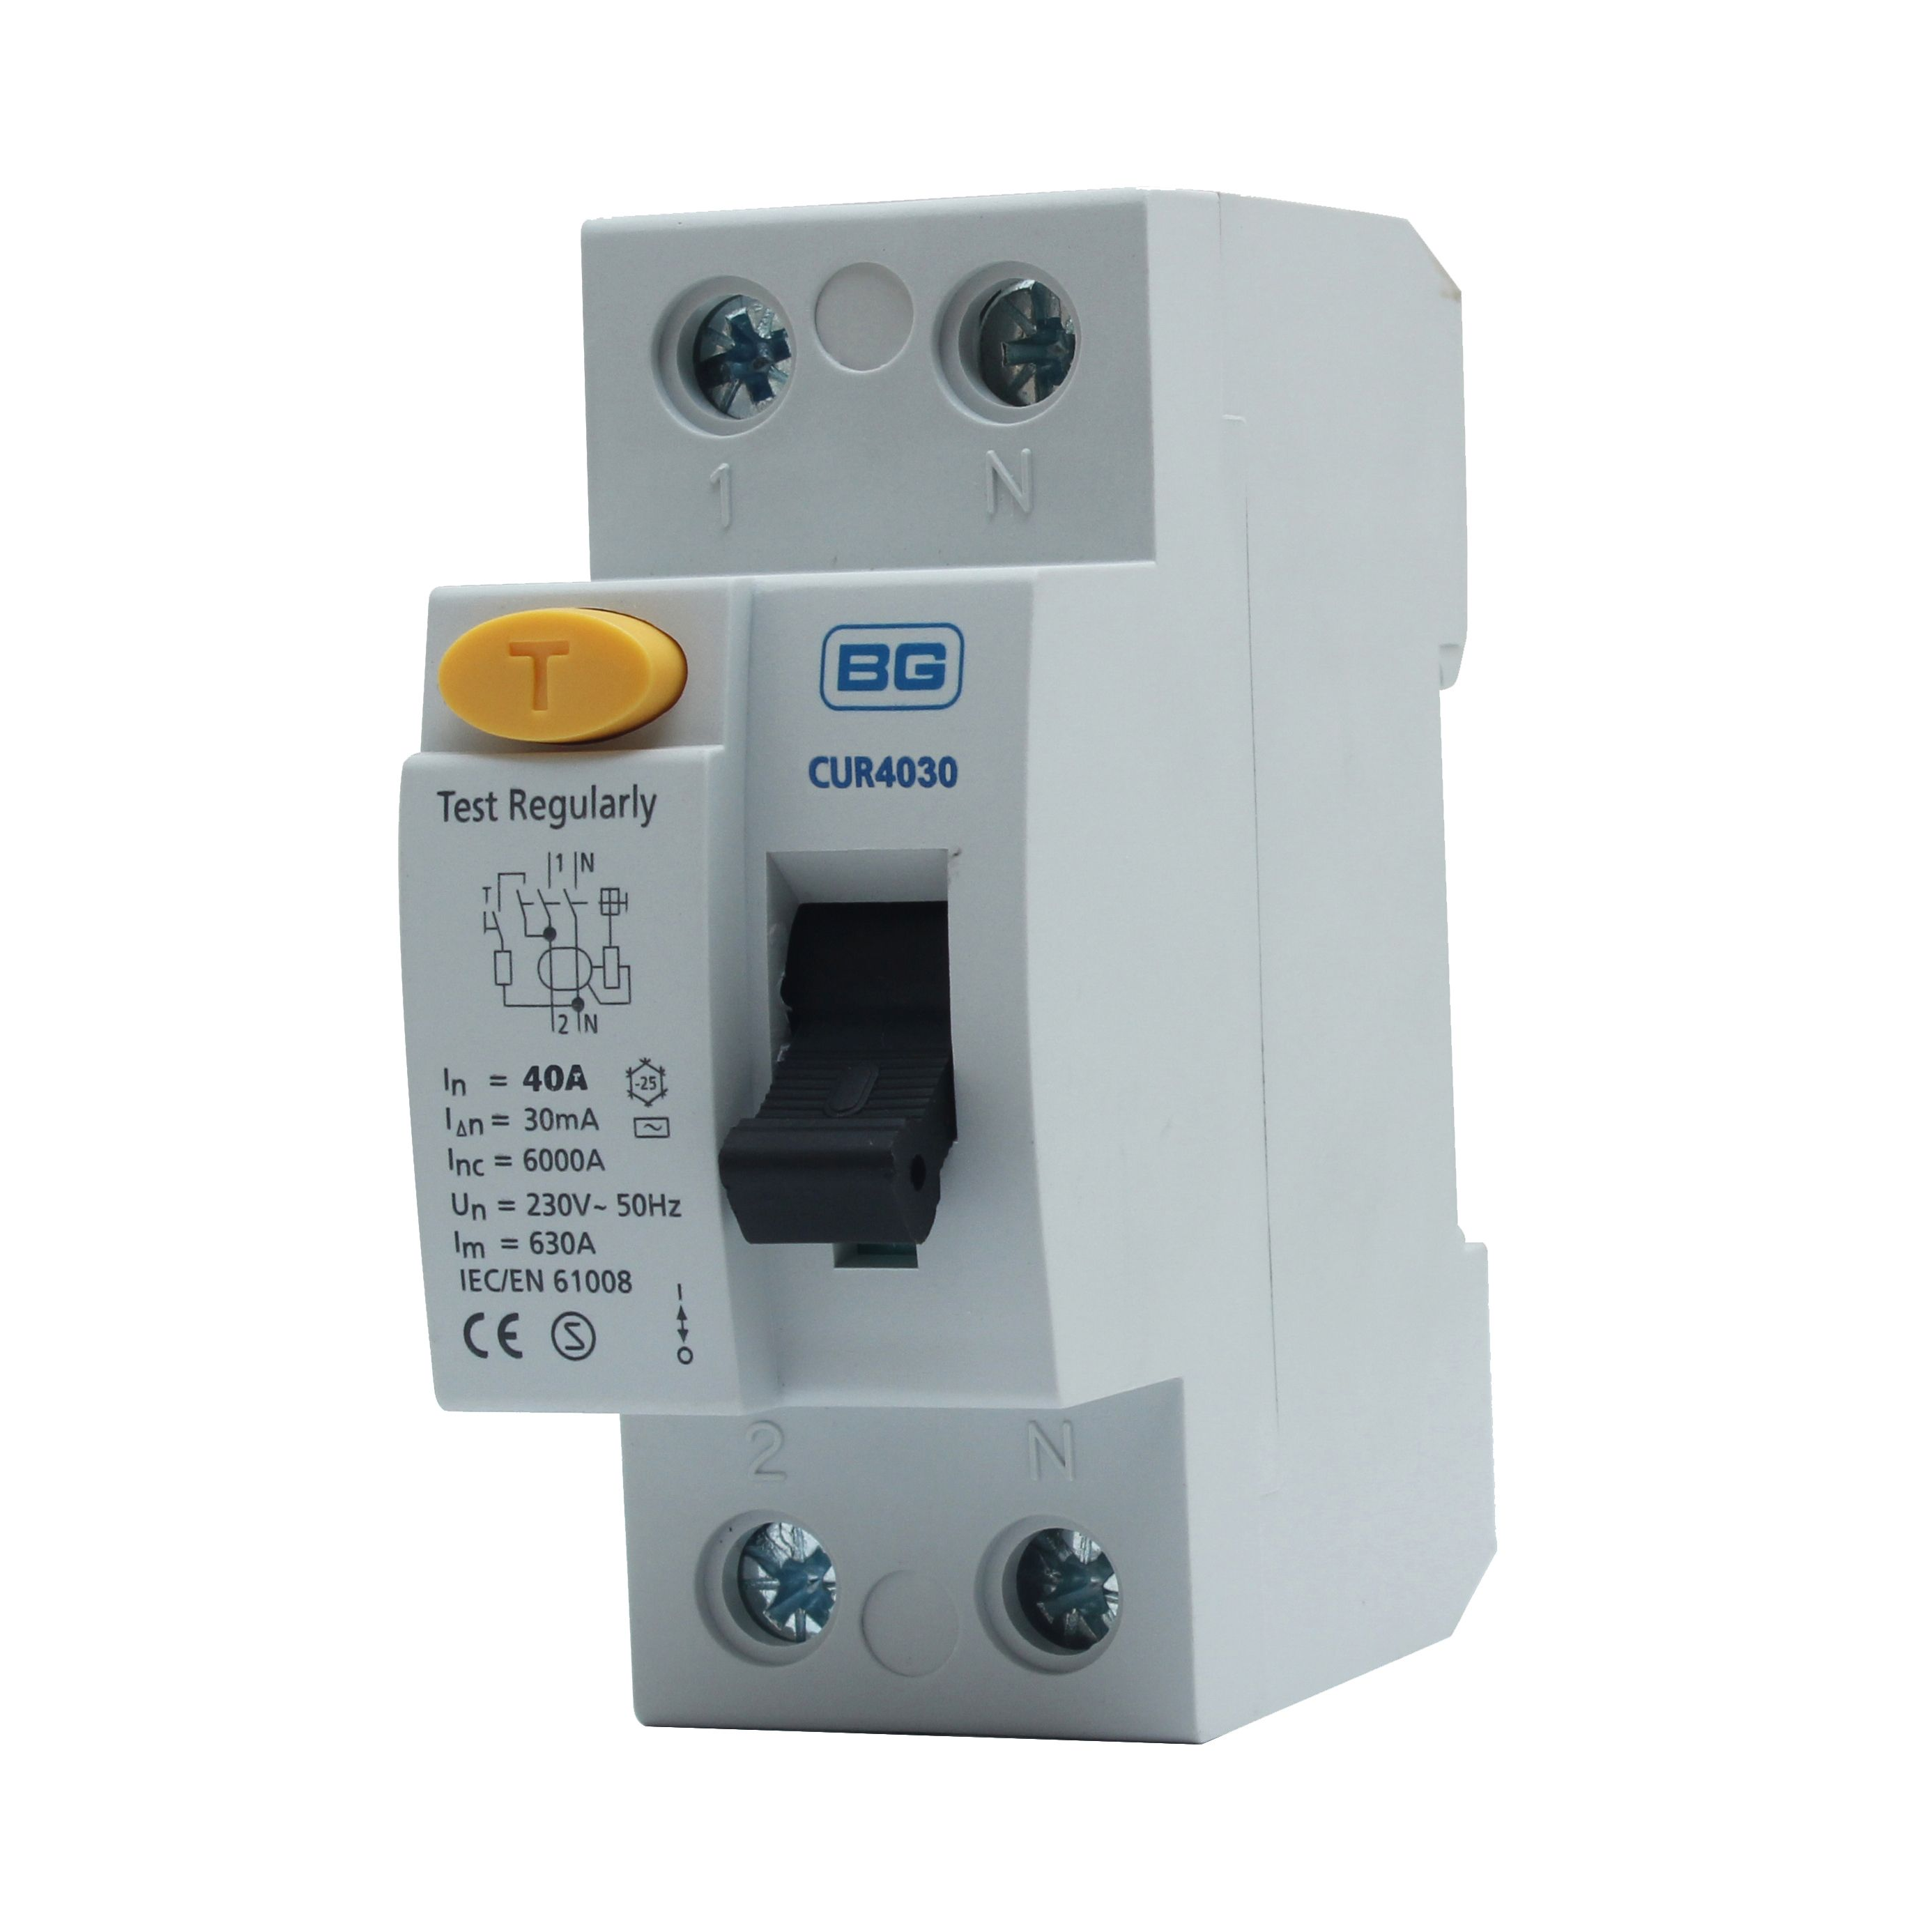 Bg 40a Dp 230 400v 30ma Rcd Departments Diy At Bq Iec Fuse With Switch Wiring Diagram